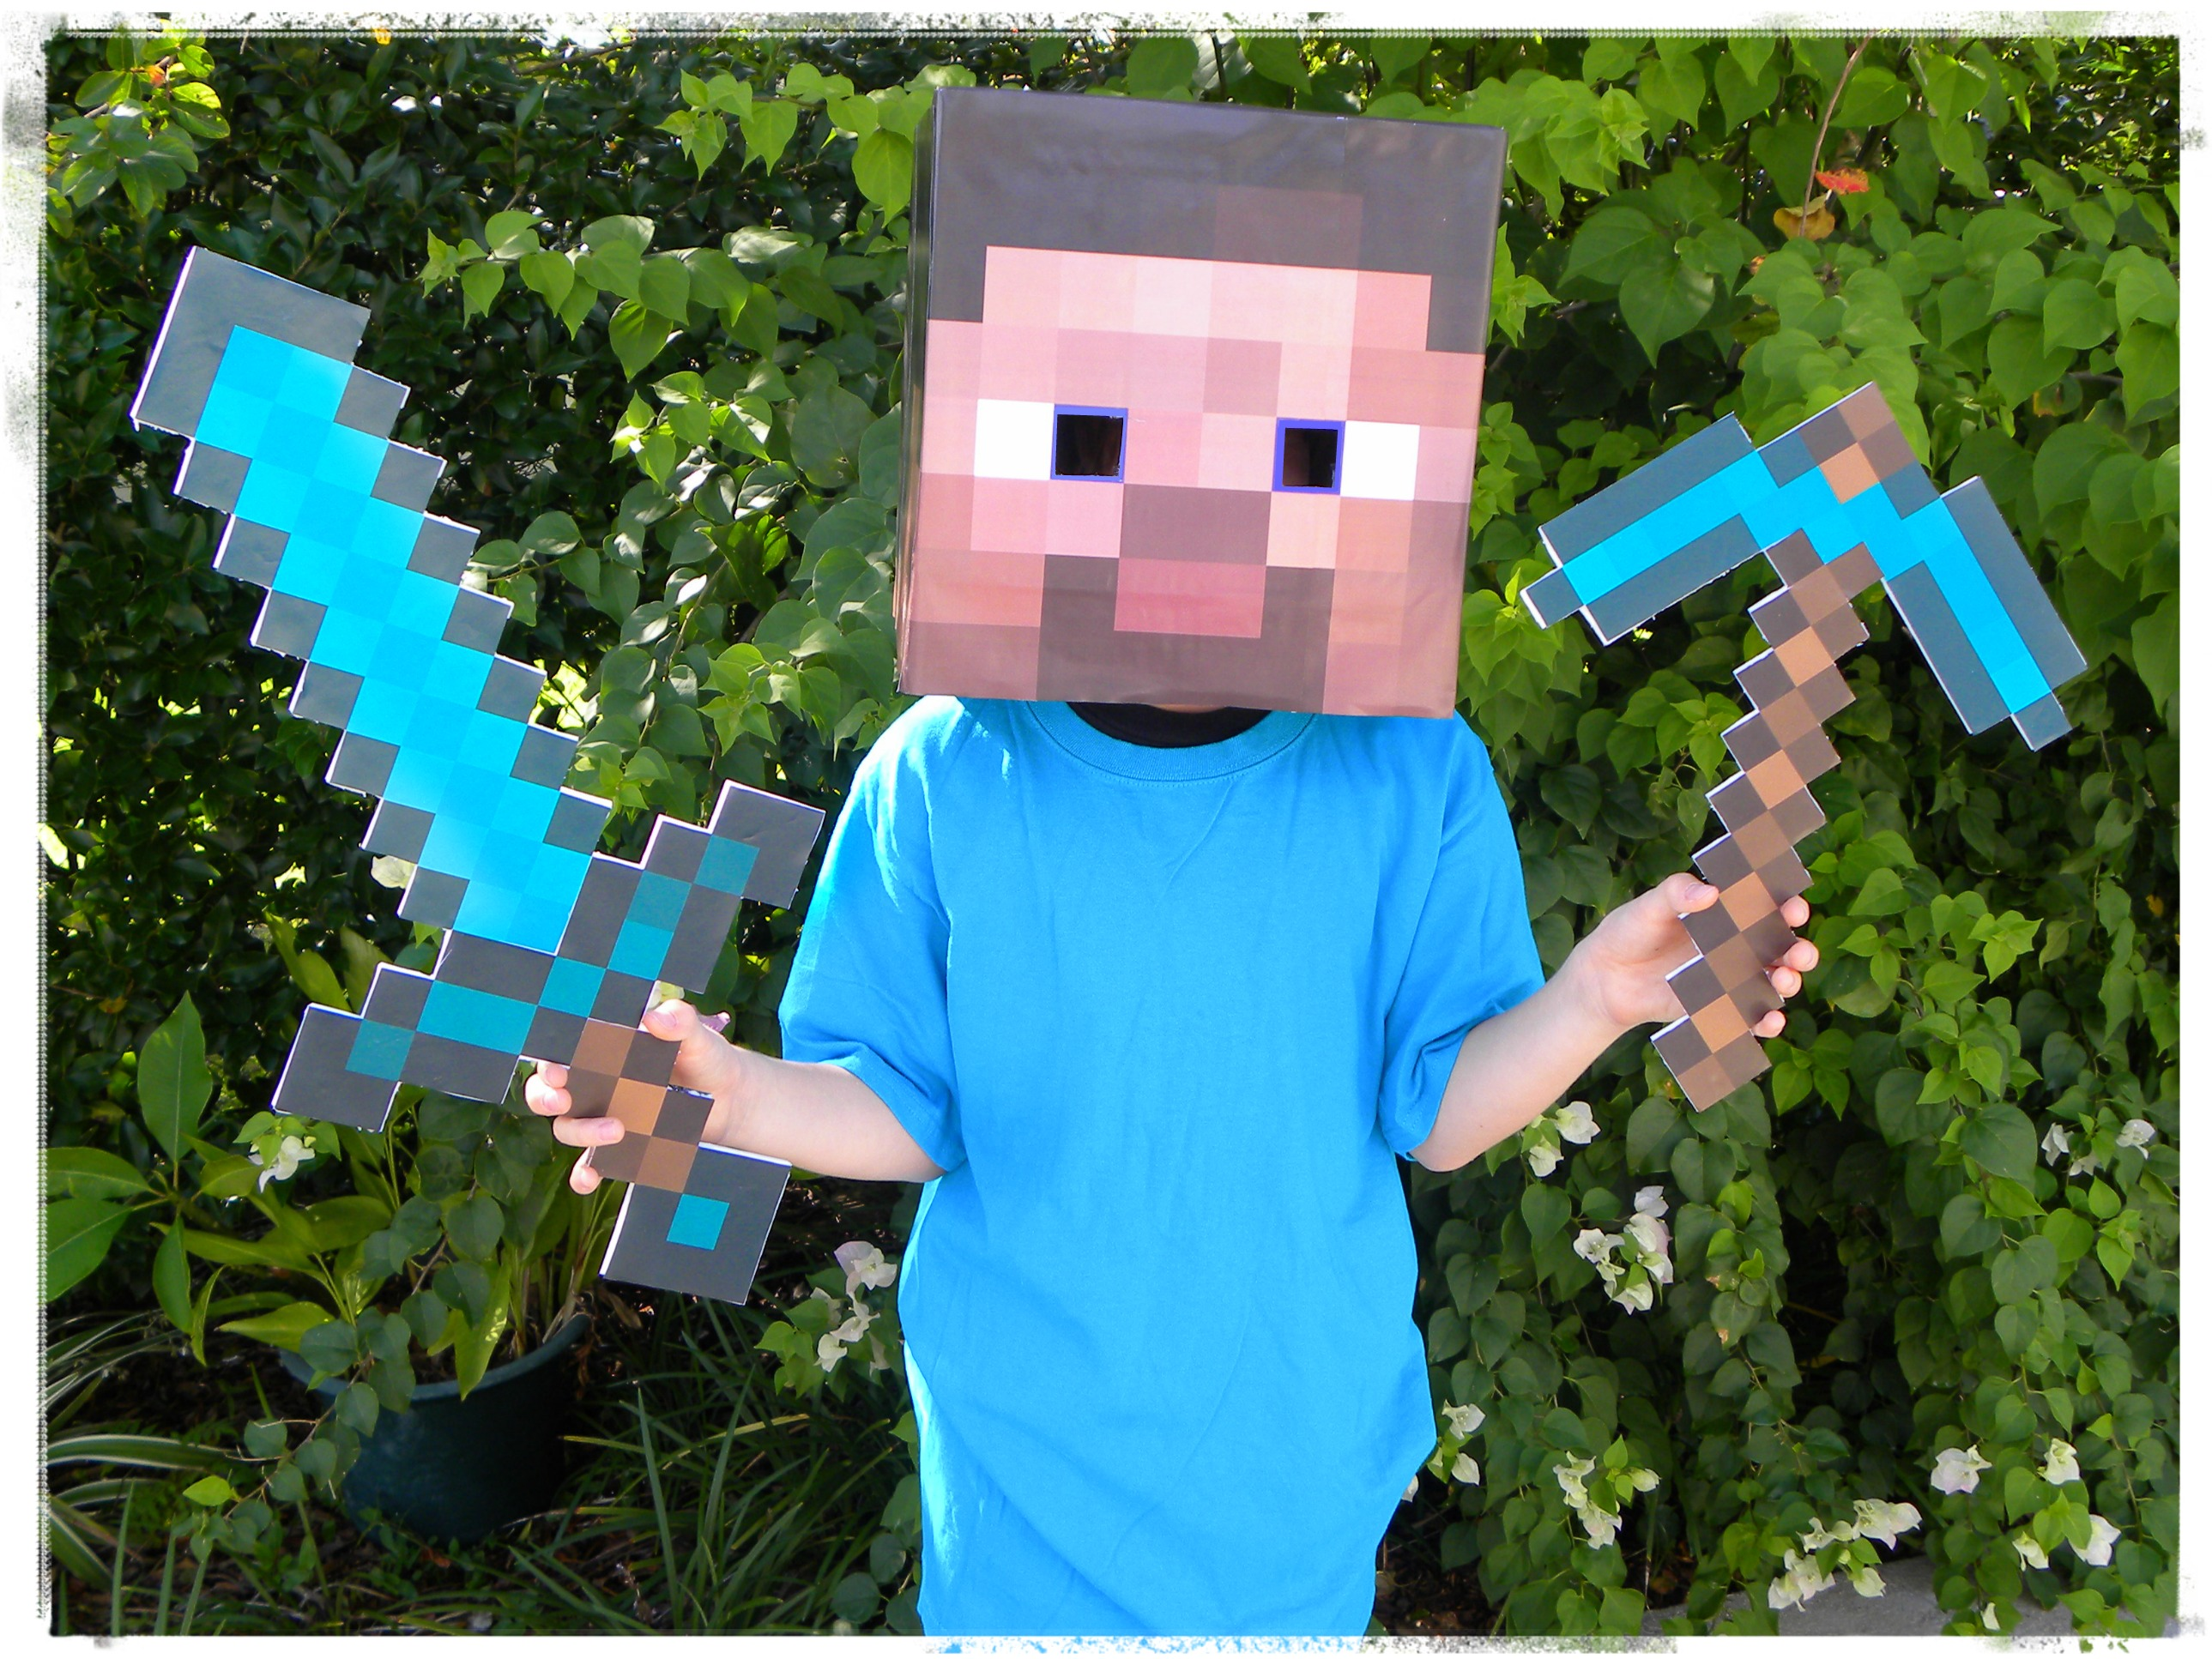 How to make a minecraft steve costume for less than 10 how to make a minecraft steve costume for cheap homemade minecraft costume solutioingenieria Images